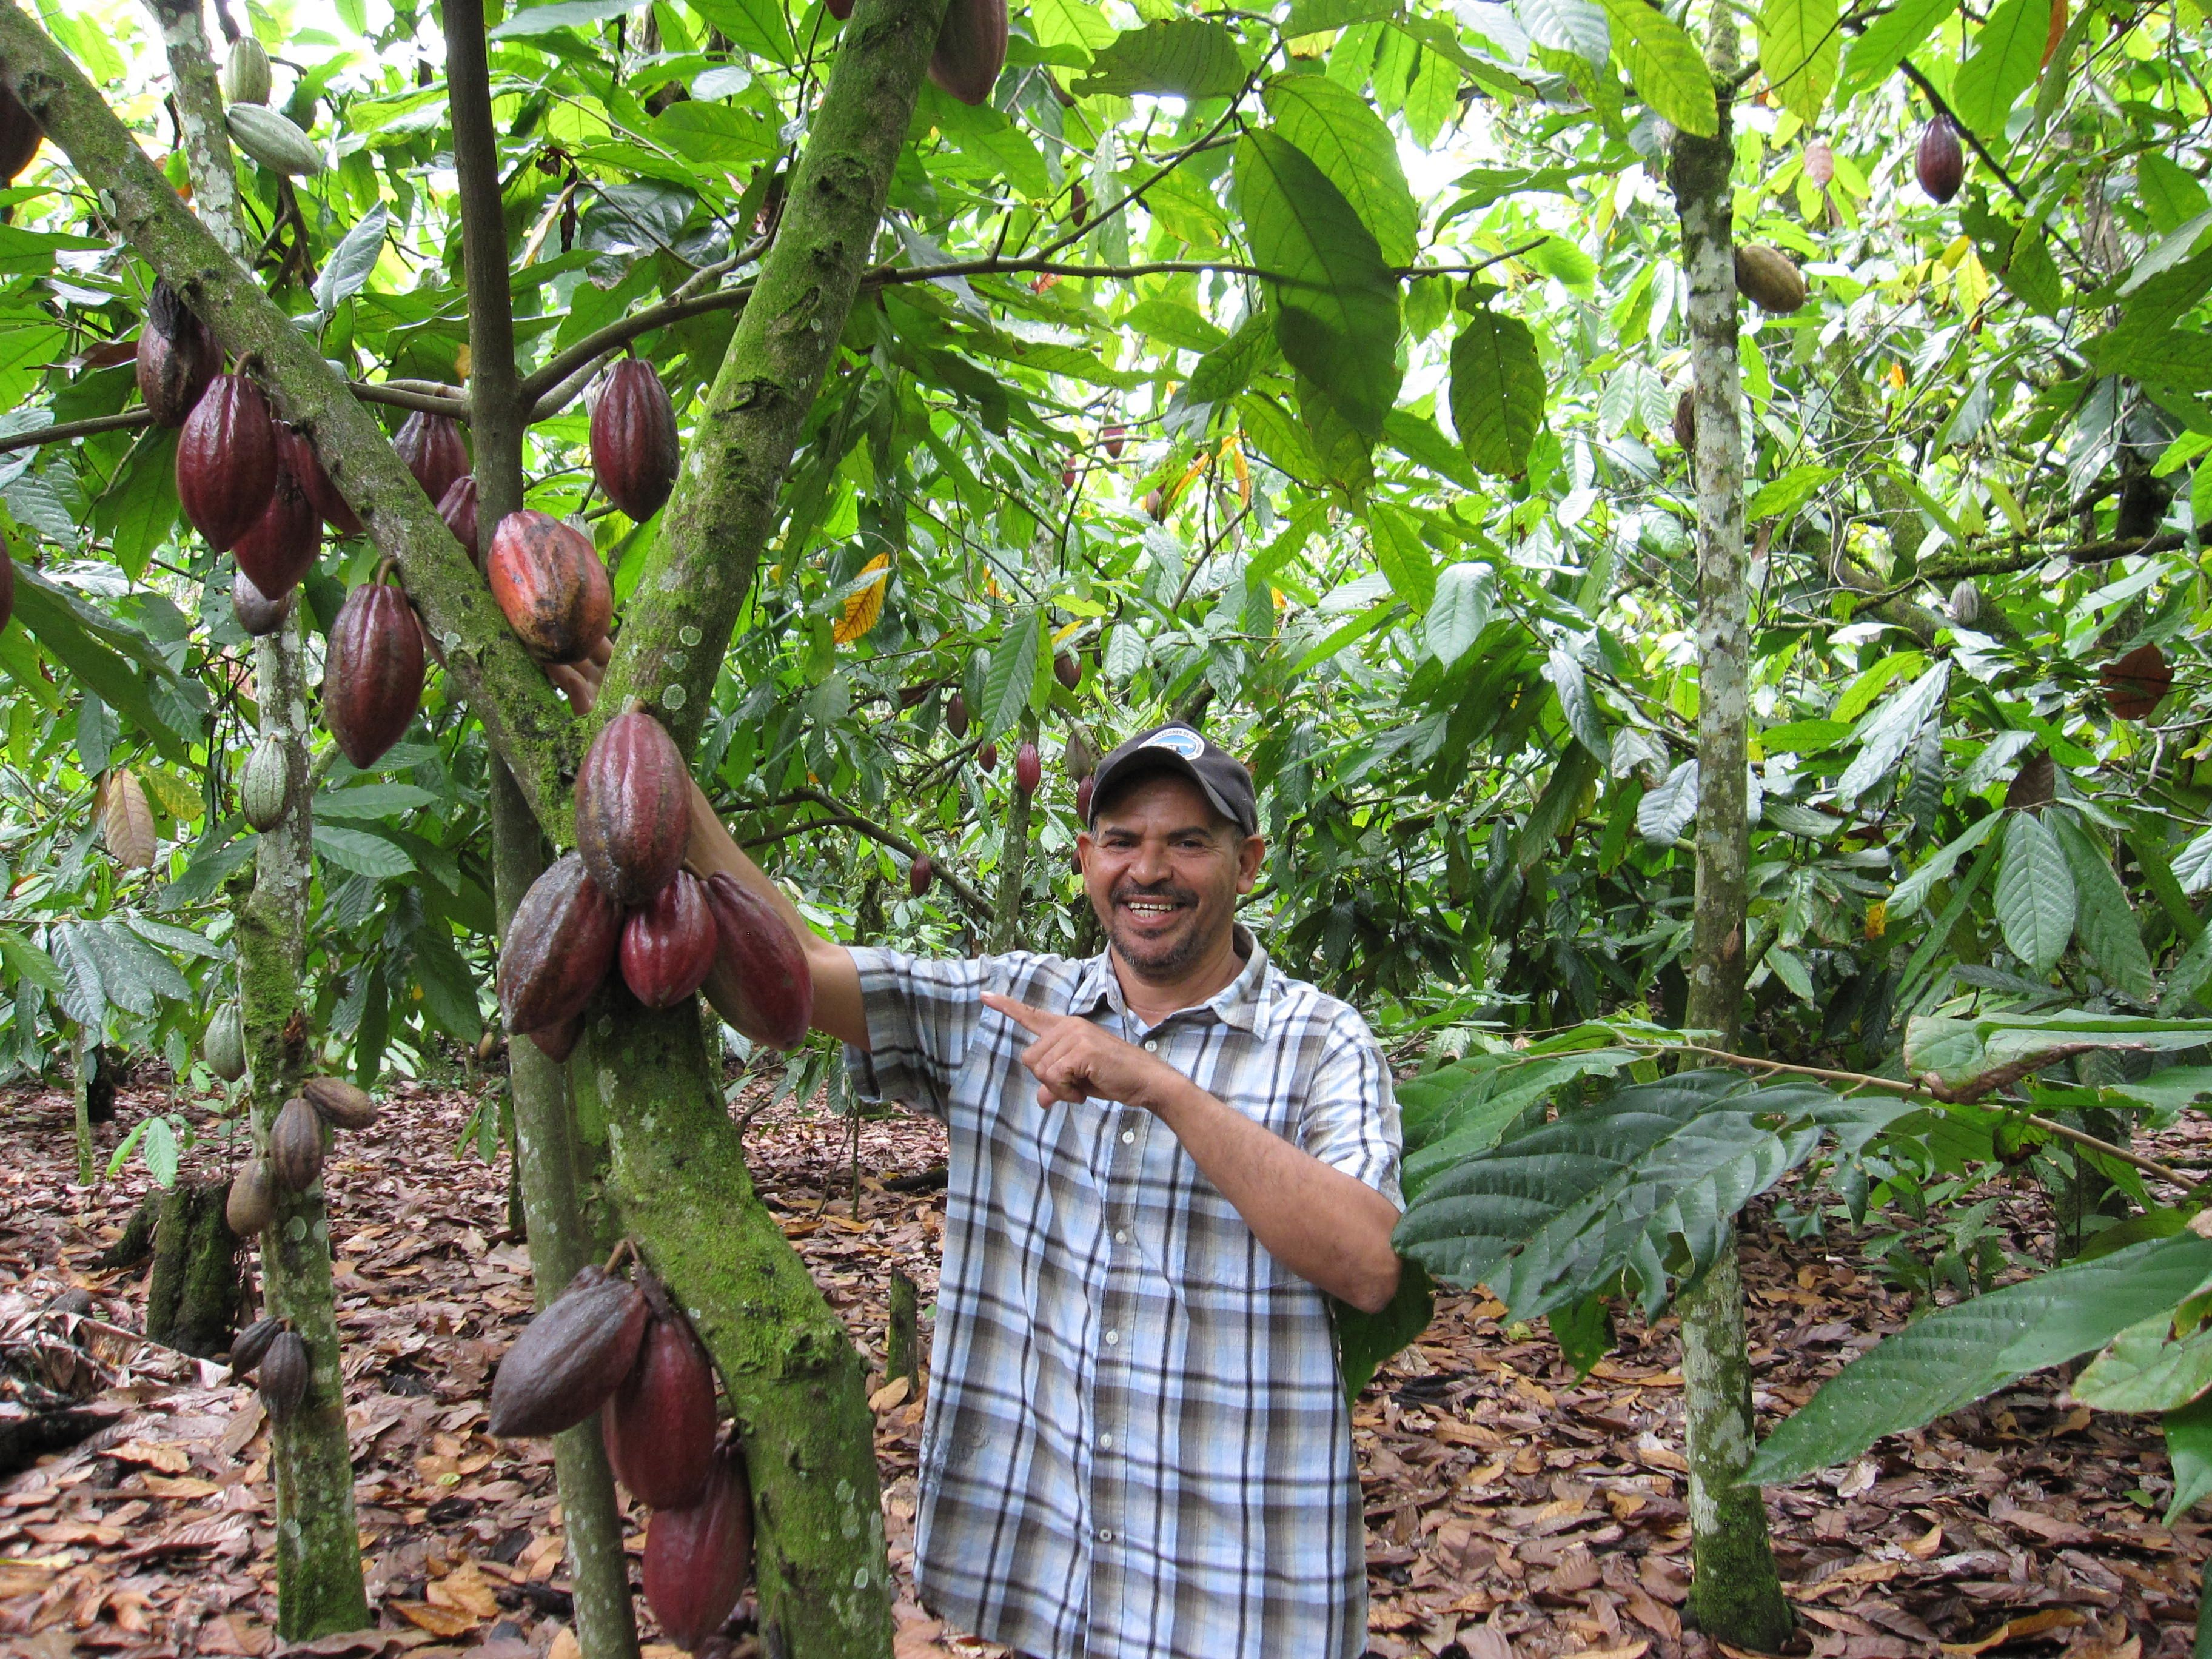 The Dominican Republic is in the top ten for producers of cocoa beans… | 6.DOM.REP.:CACAO,SUGAR FIELDS,TOBACCO FIELDS | Pinterest